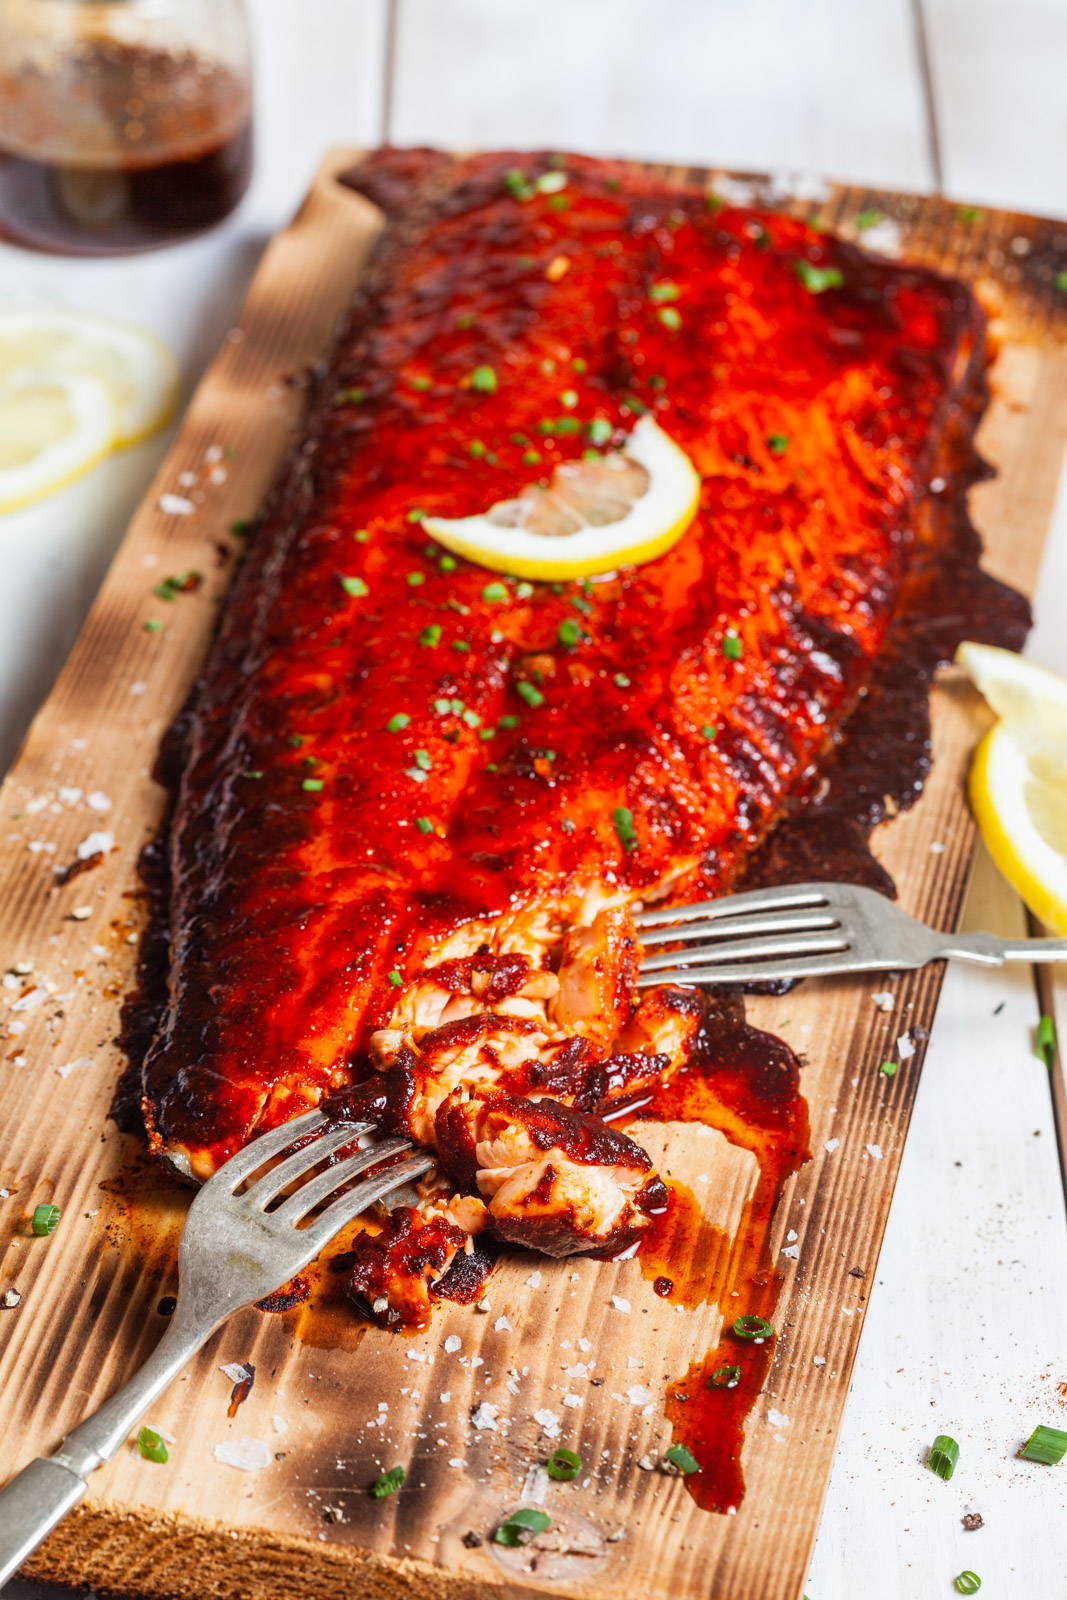 Spiced Cedar Plank Salmon With a Maple Bourbon Glaze